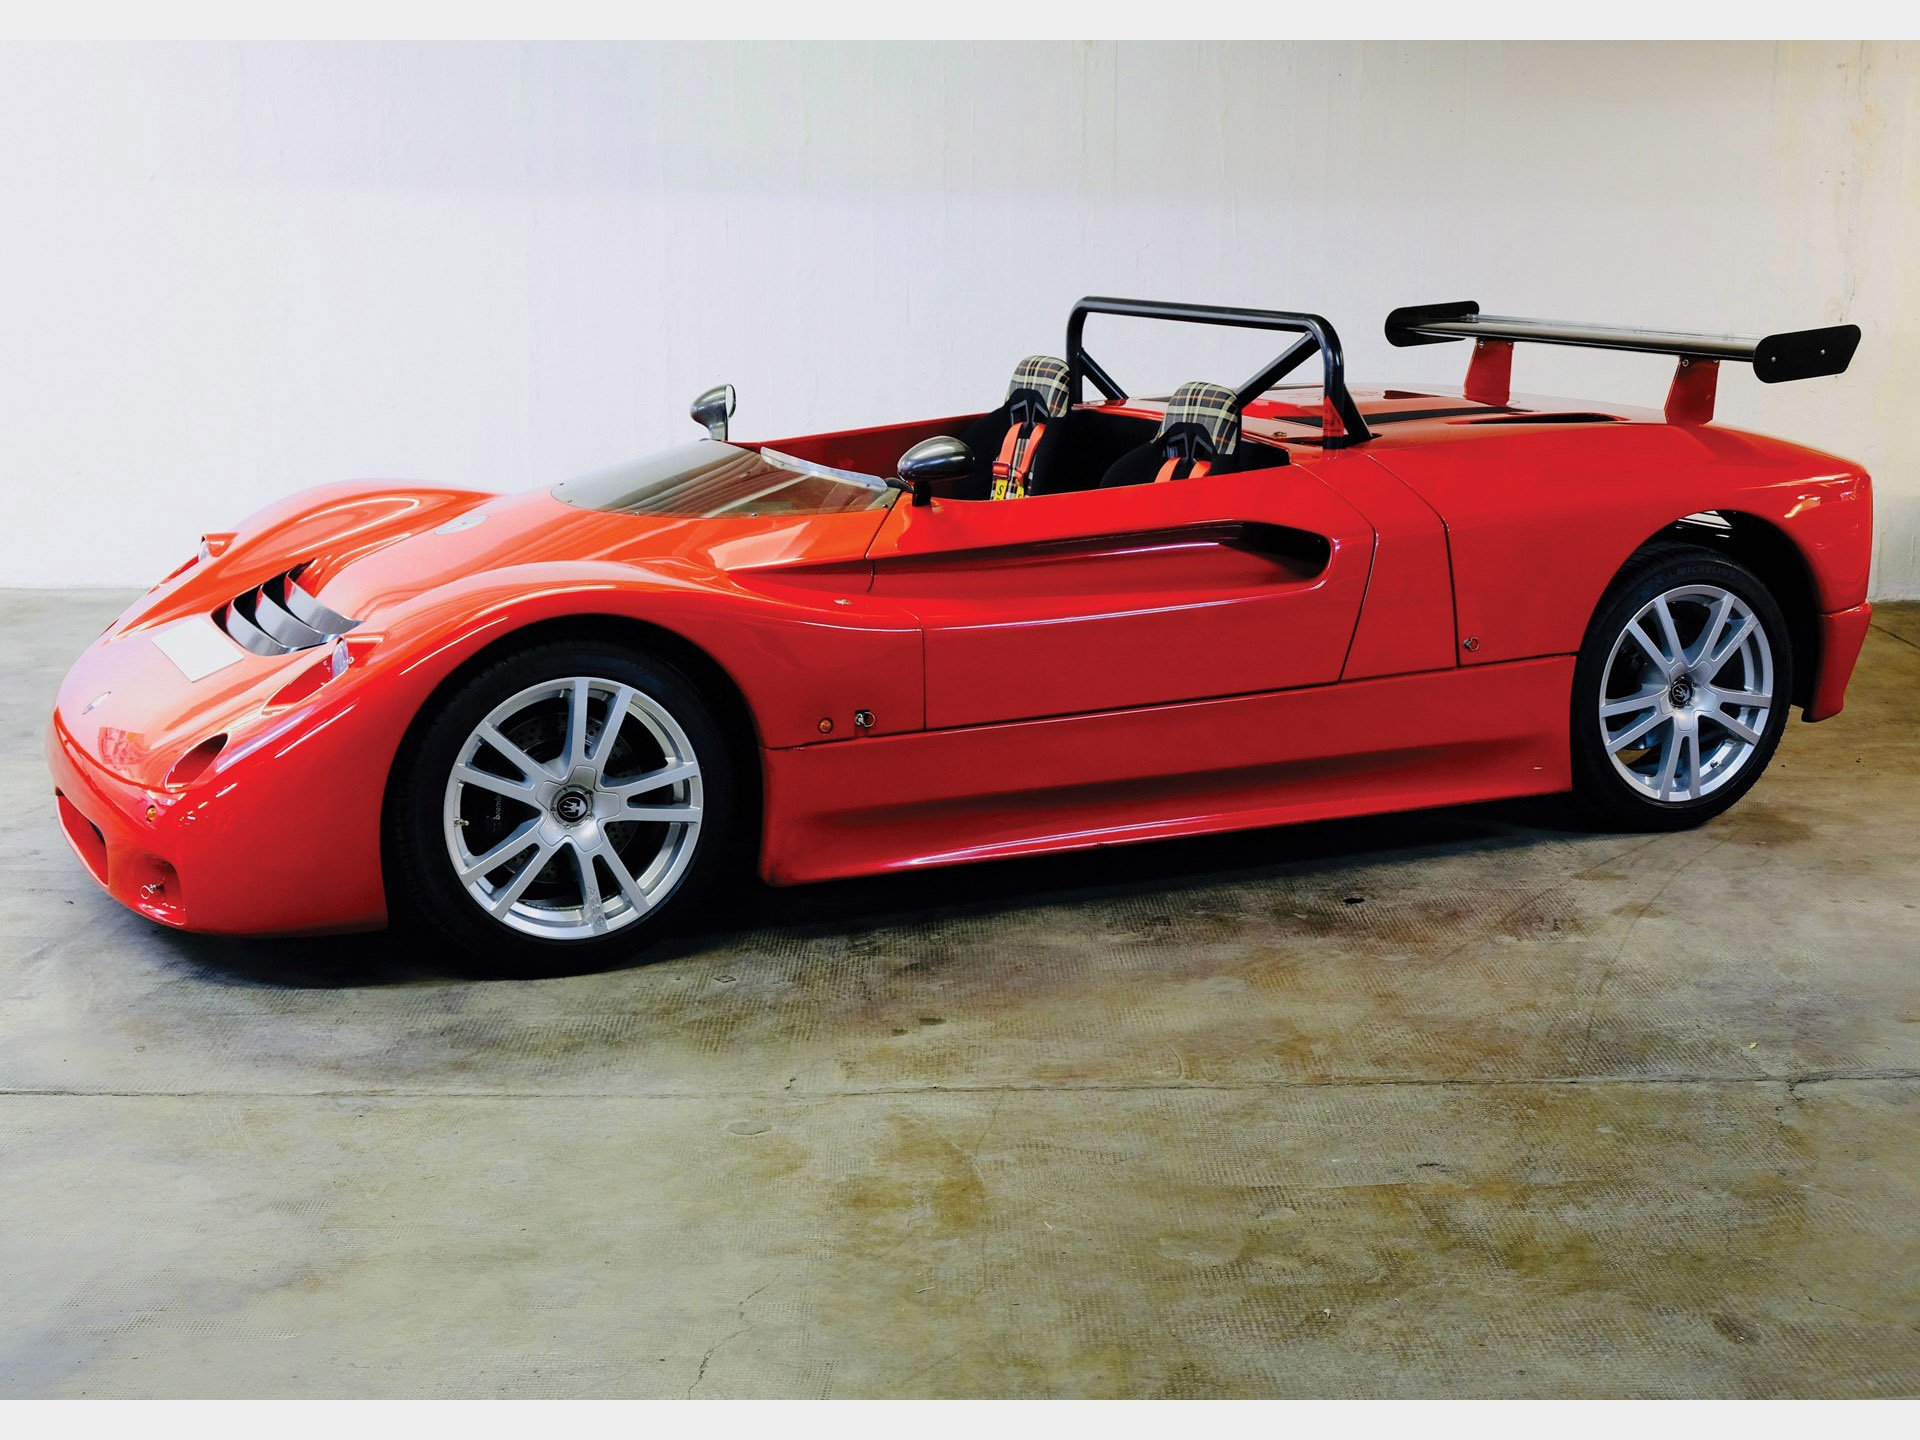 Sotheby's will be holding an auction for a unique two-seat Maserati Barchetta racecar issued in a limited series of 17 copies especially for the company's single-make racing series